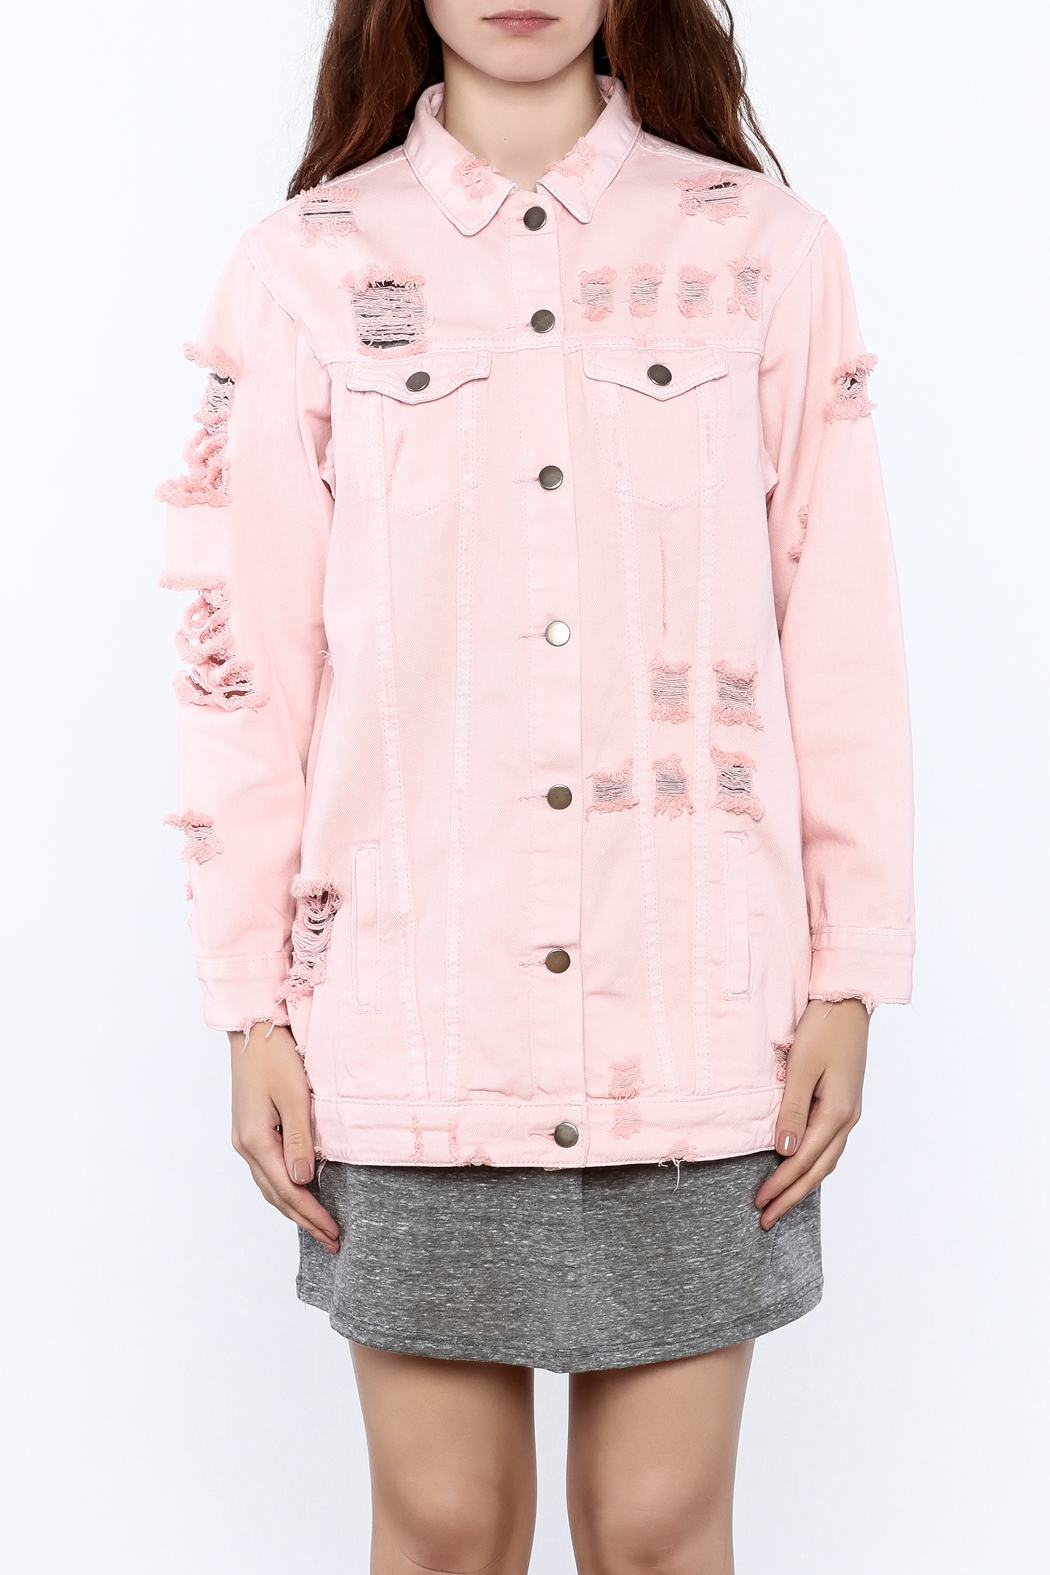 Hot  Delicious Pink Denim Jacket From New York City By -9796